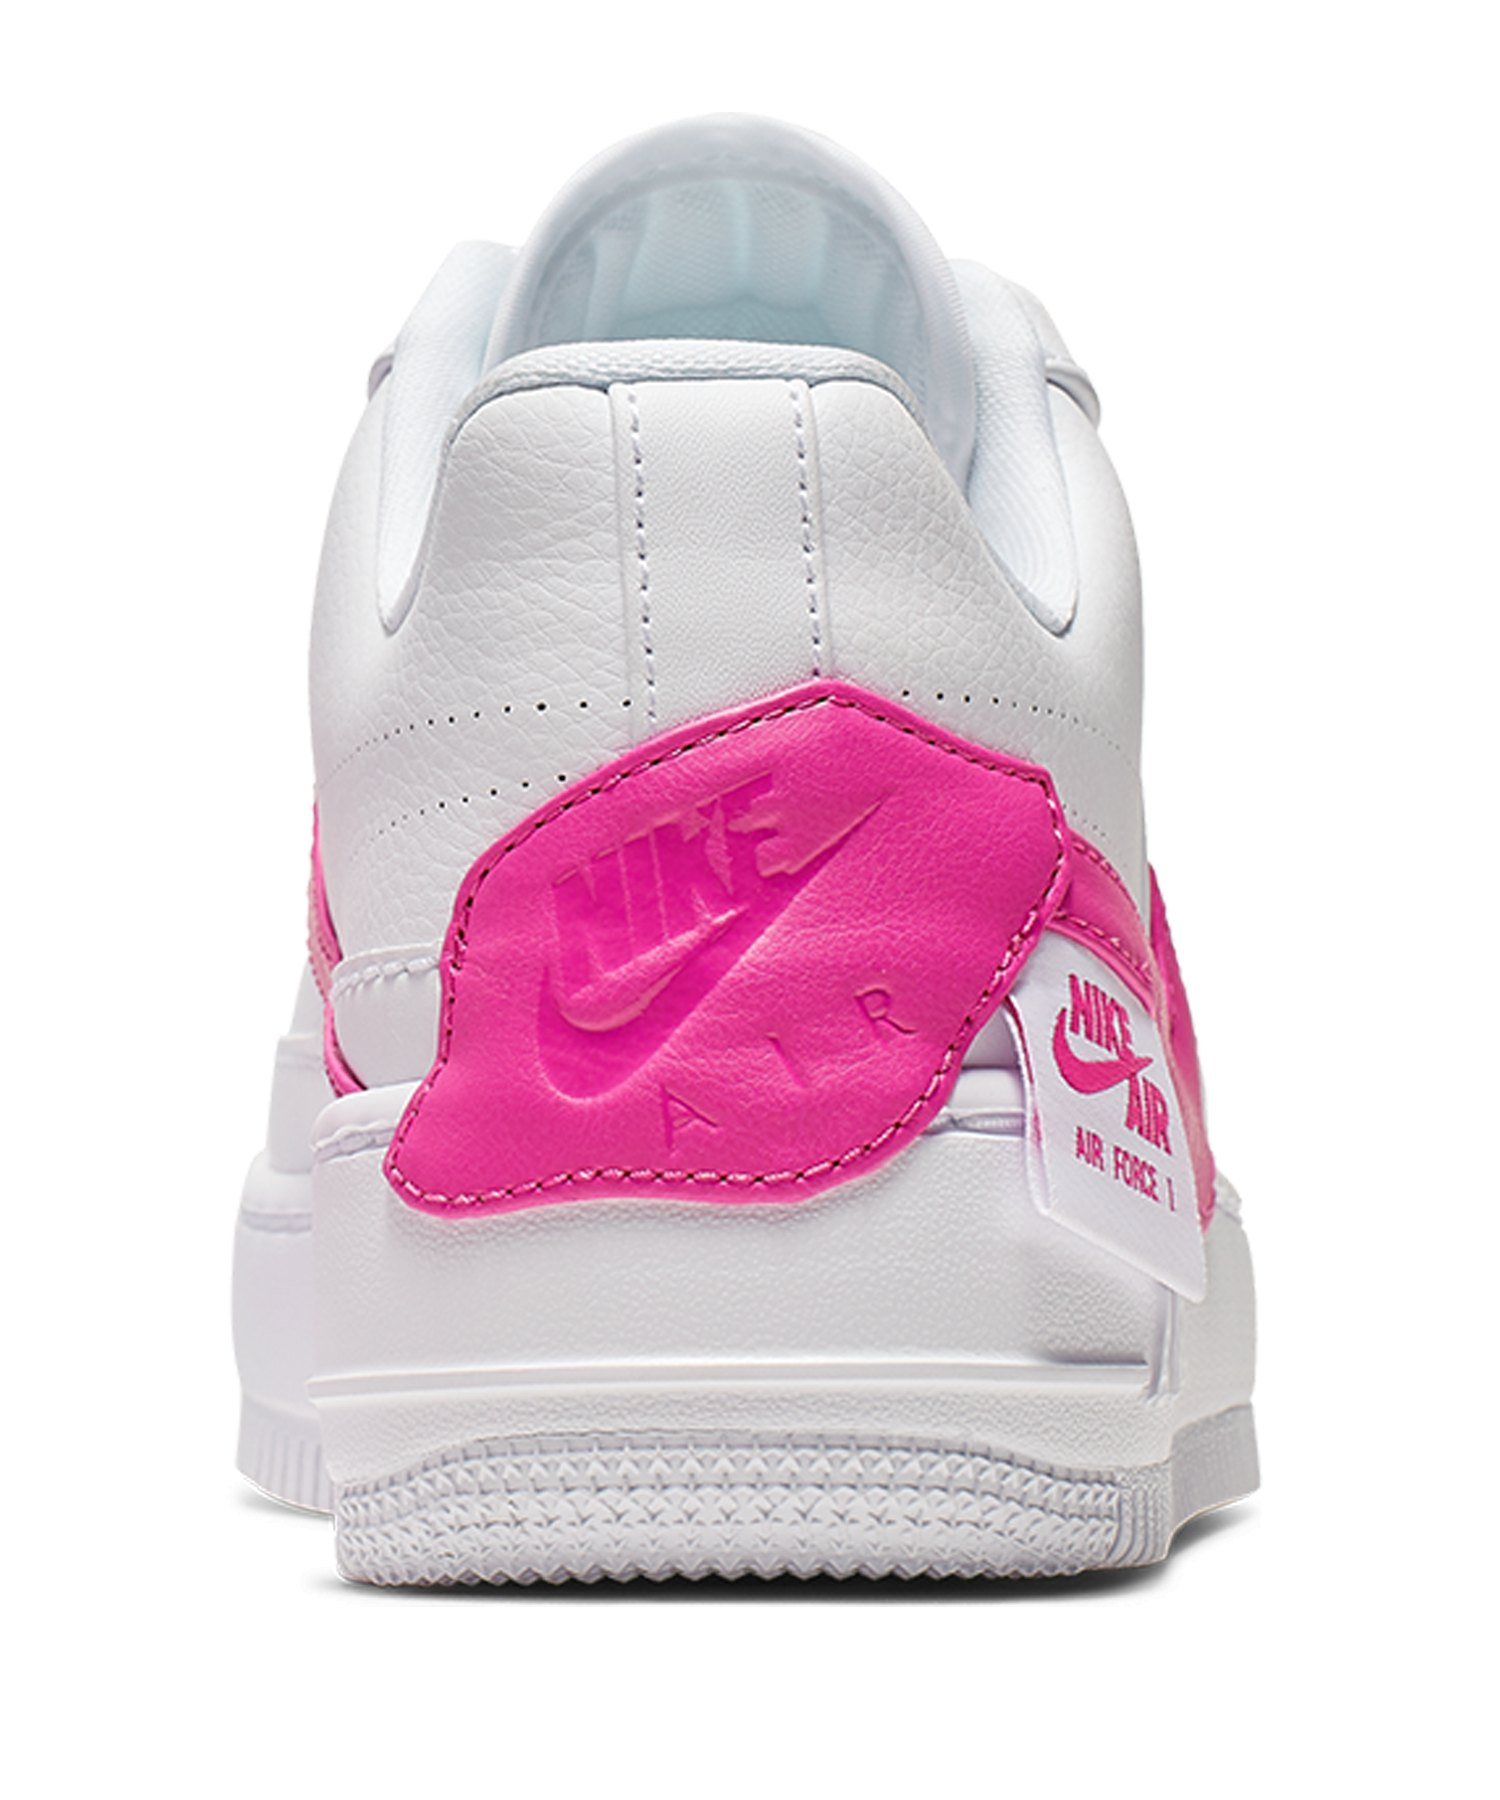 Jester Nike Air 1 Damen Sneaker F105 Force Xx N0nwm8